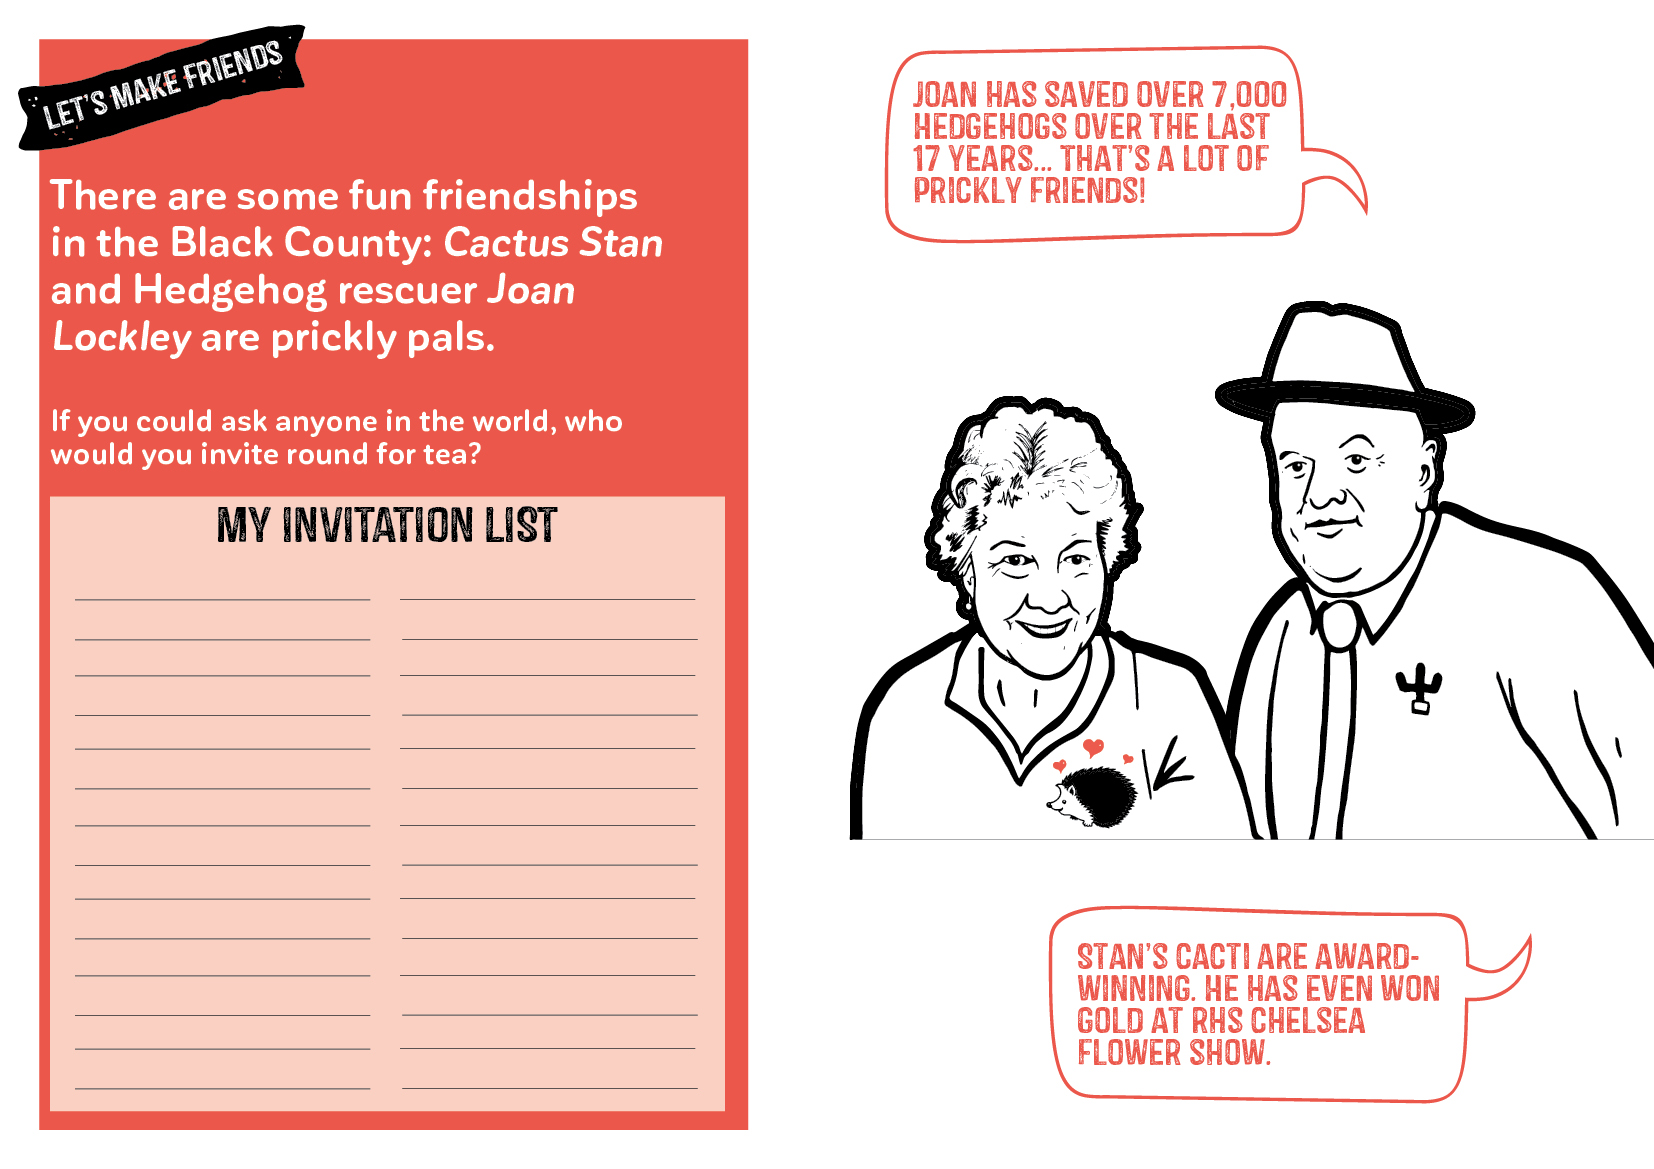 Put together the best imaginary party list inspired by prickly pals Joan and Stan.